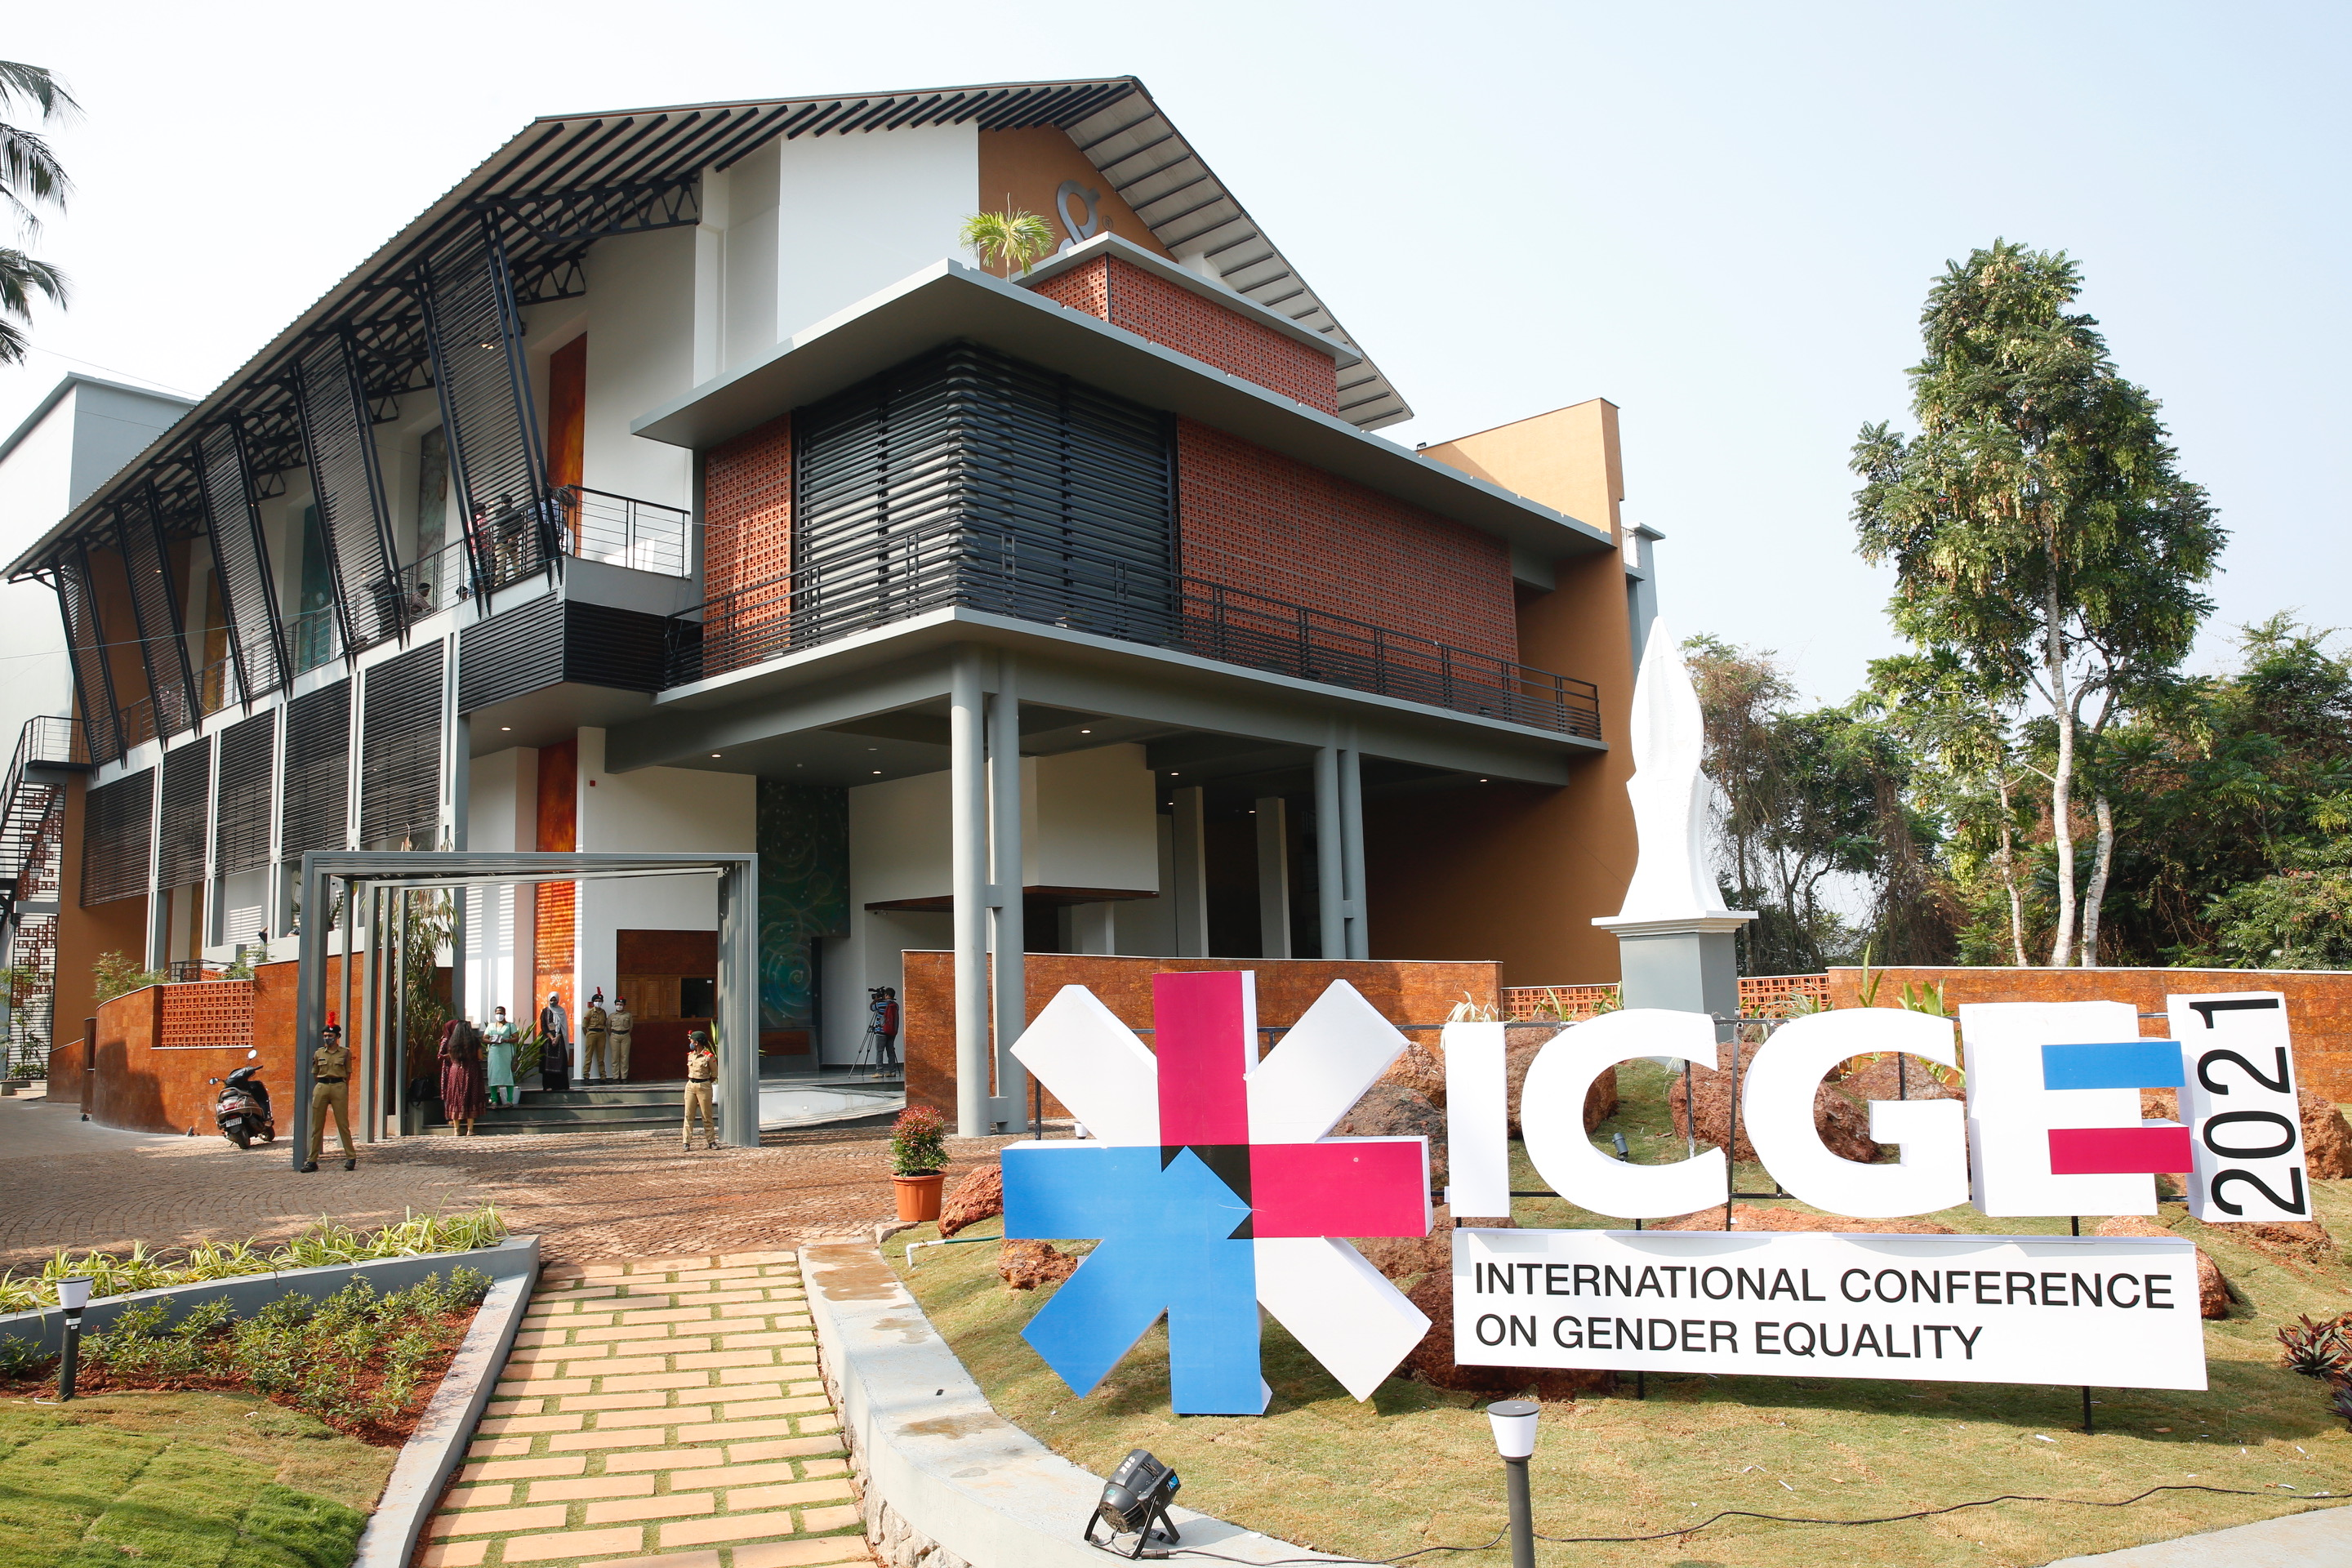 venue of the ICGE-2